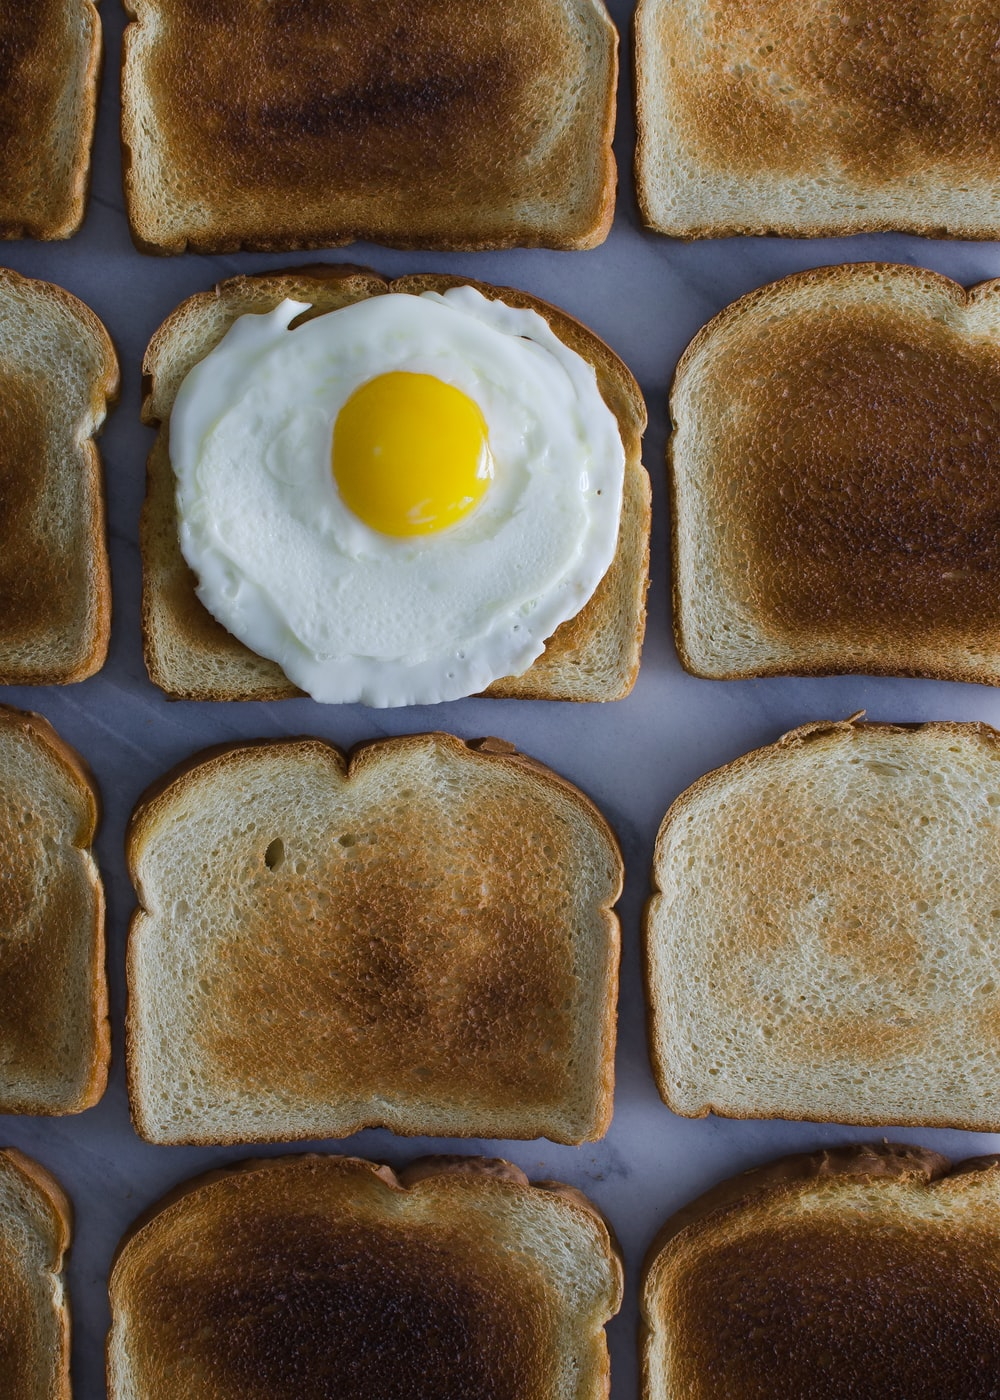 sunny side up egg on toasted breads